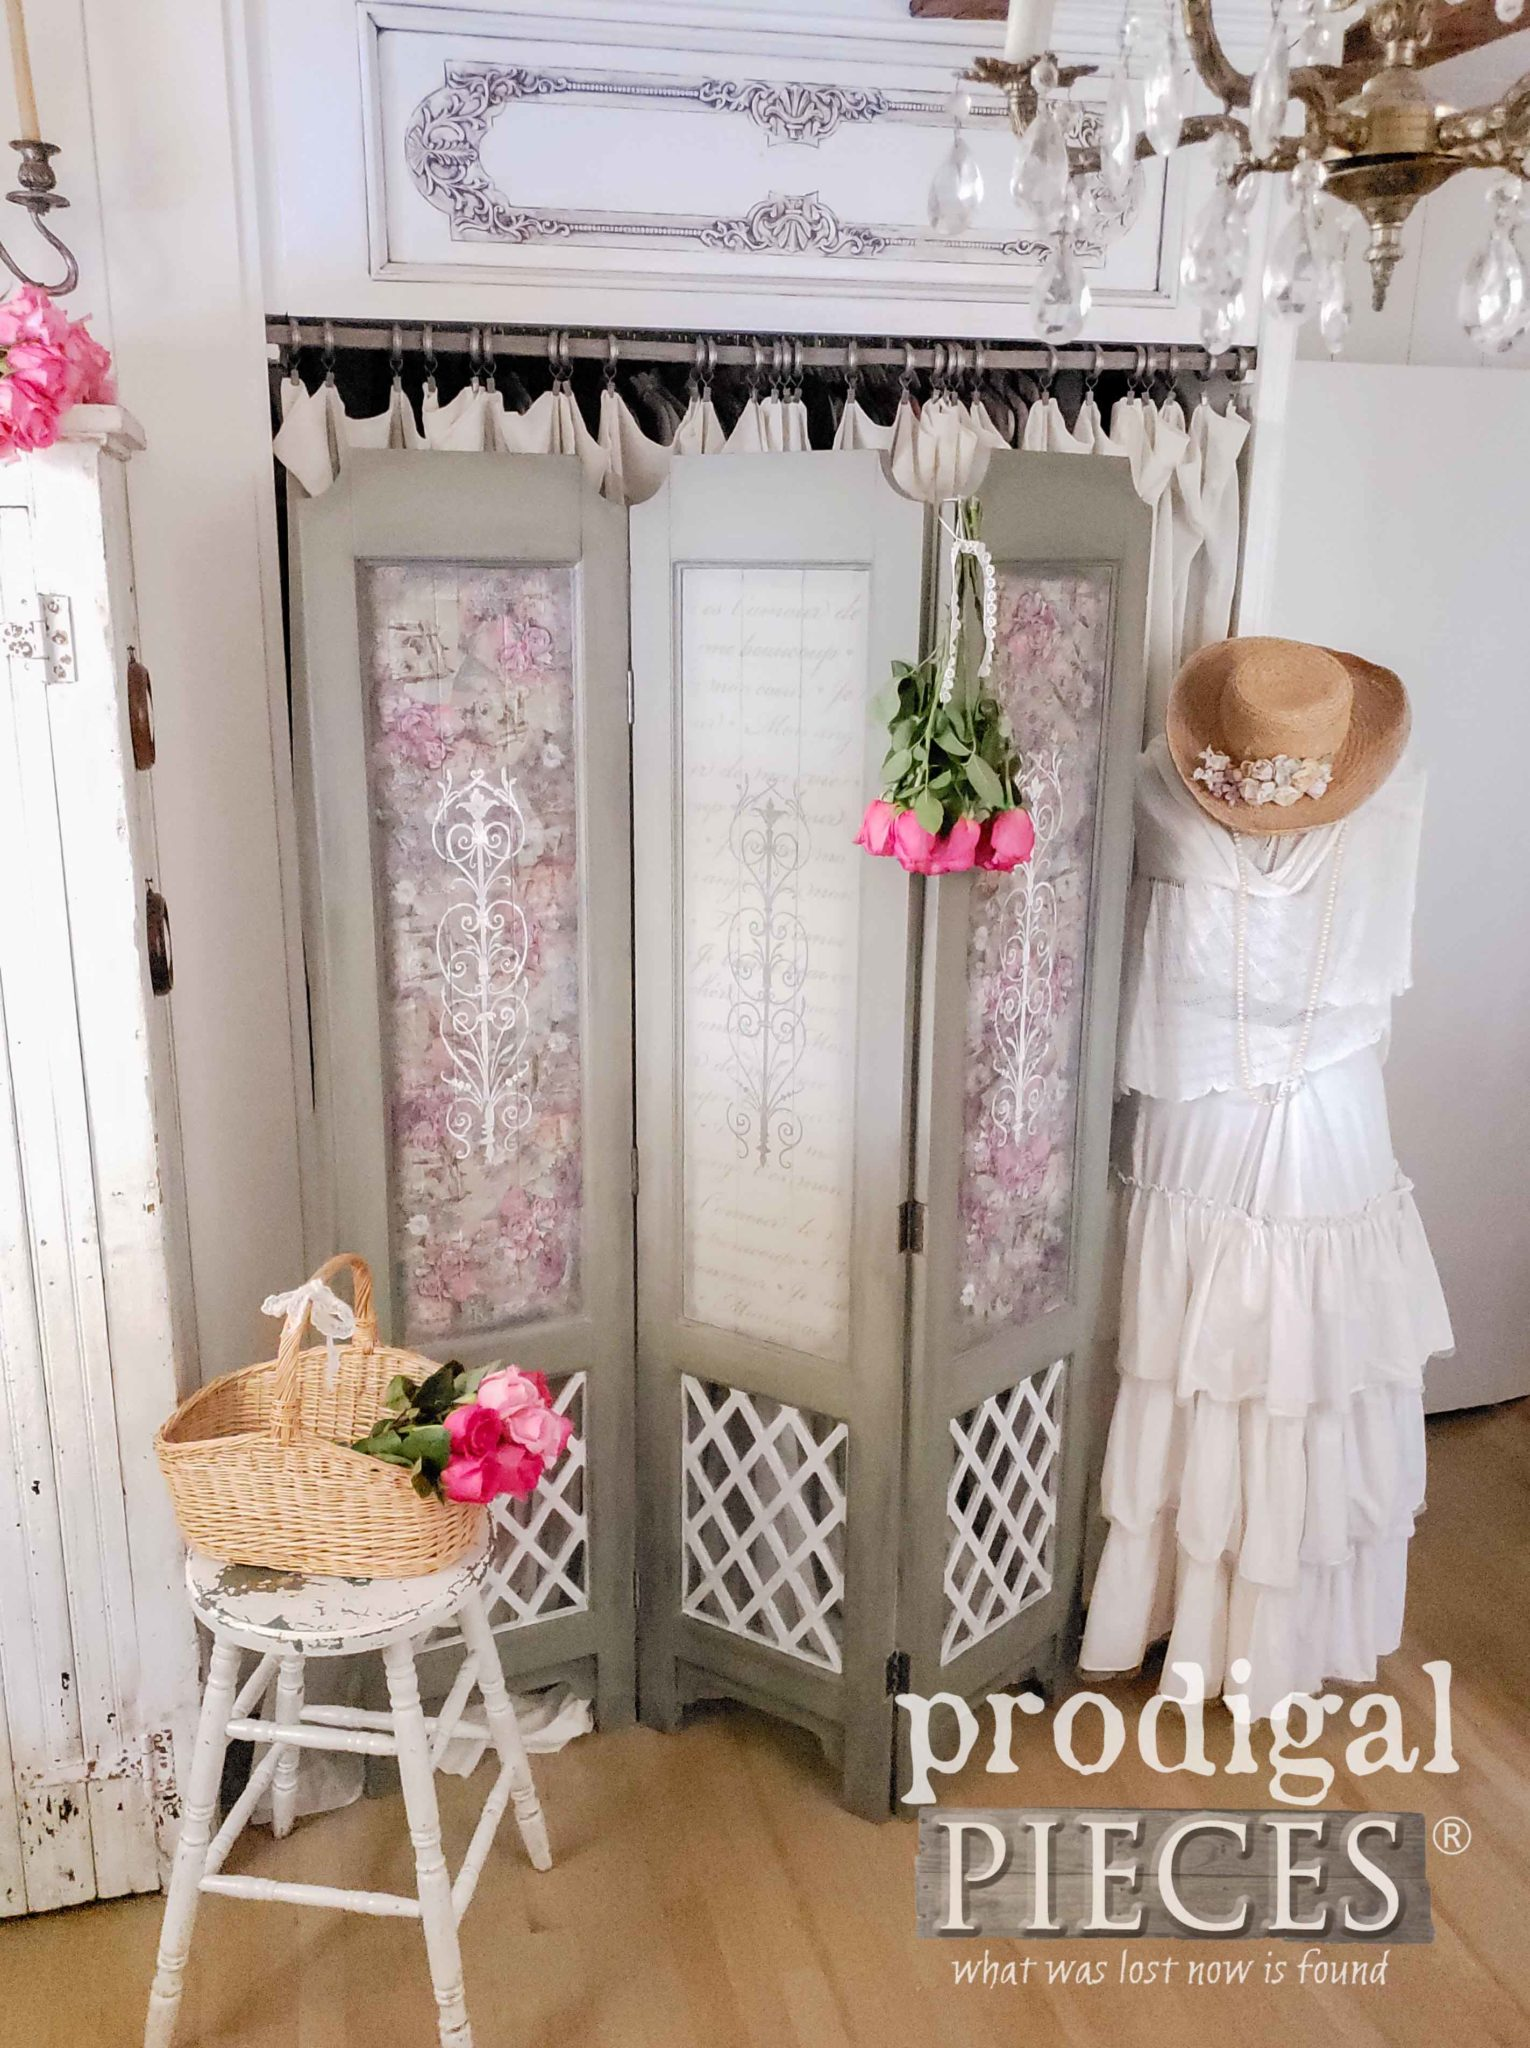 Farmhouse Romantic Chic Bedroom with Roses by Larissa of Prodigal Pieces | prodigalpieces.com